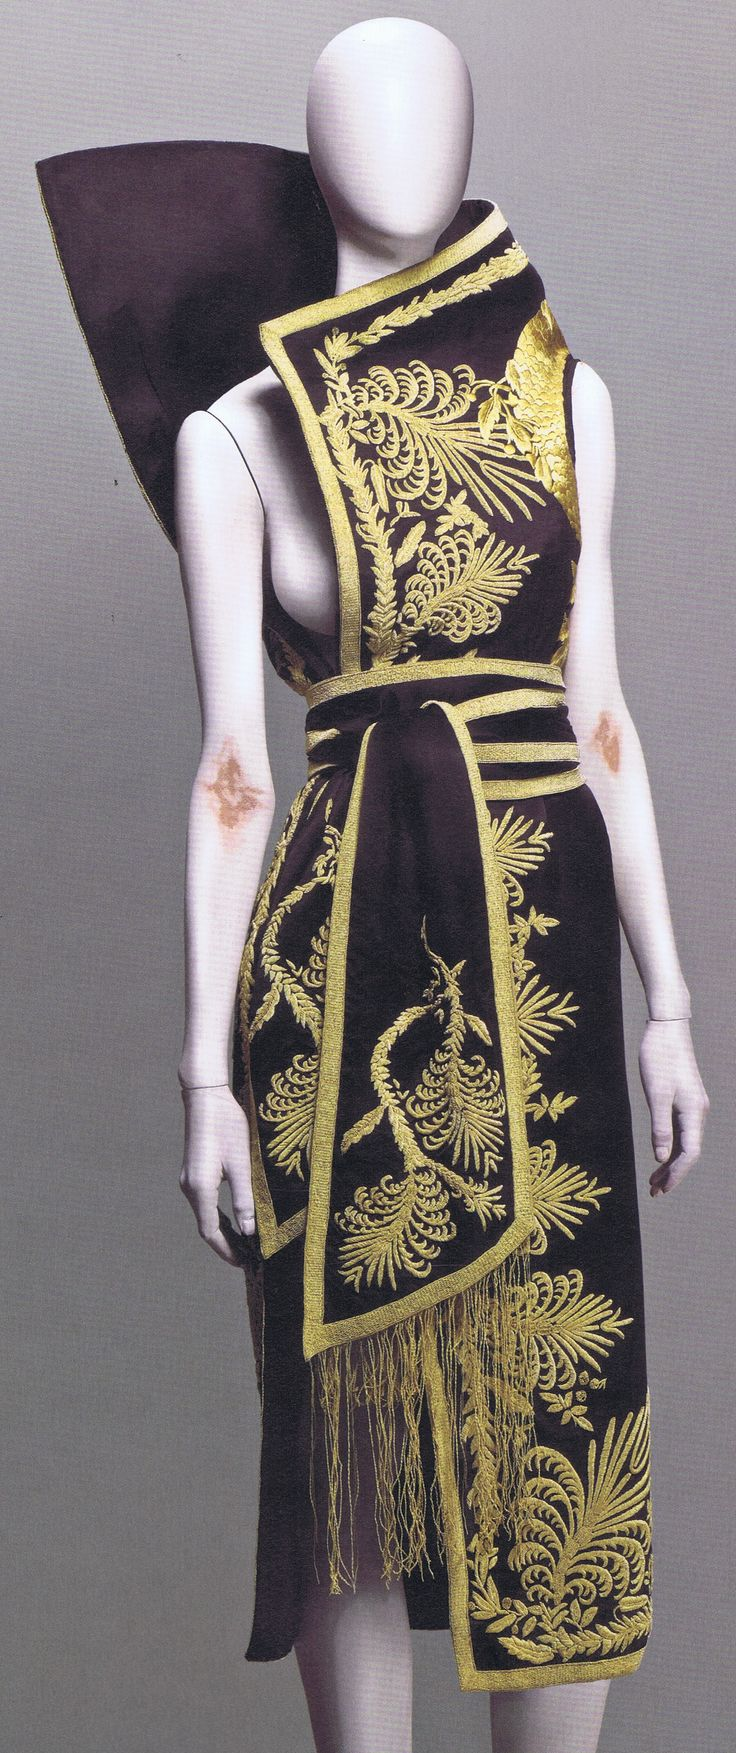 Ok. Now, I just need to money to buy this and a place to wear it ;) Alexander McQueen